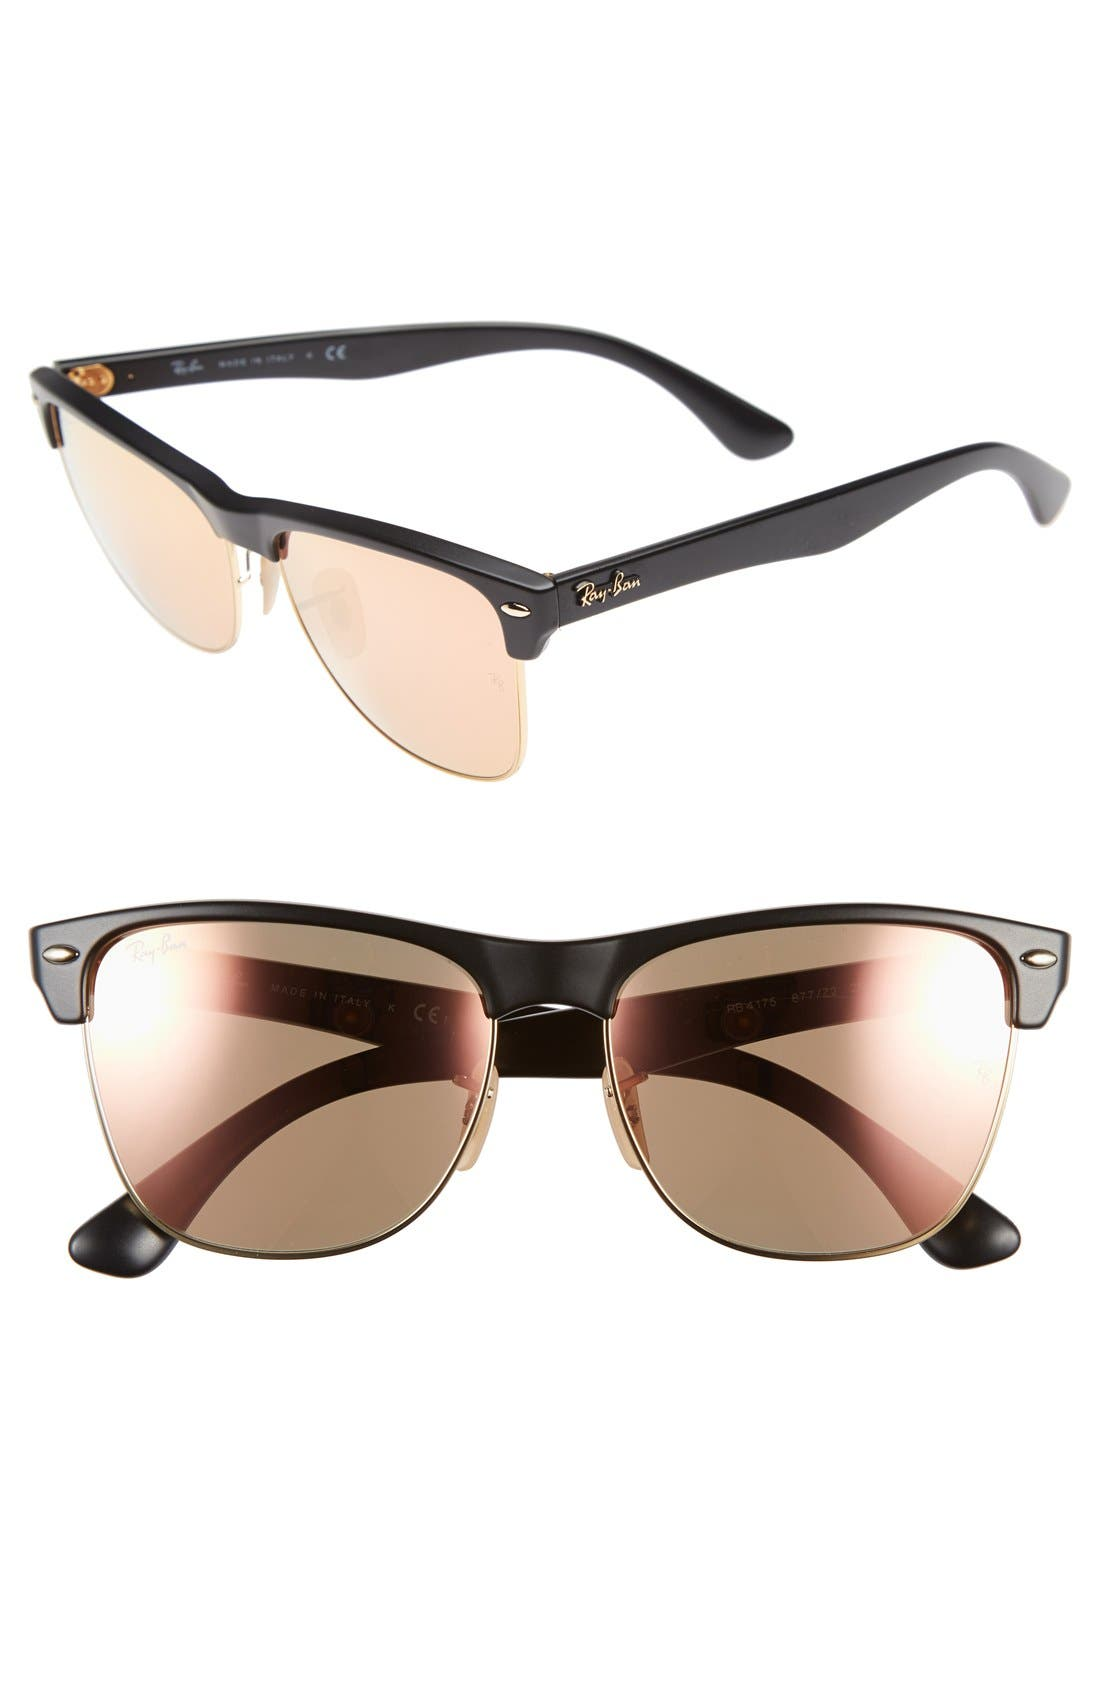 Main Image - Ray-Ban Highstreet 57mm Sunglasses (Nordstrom Exclusive)